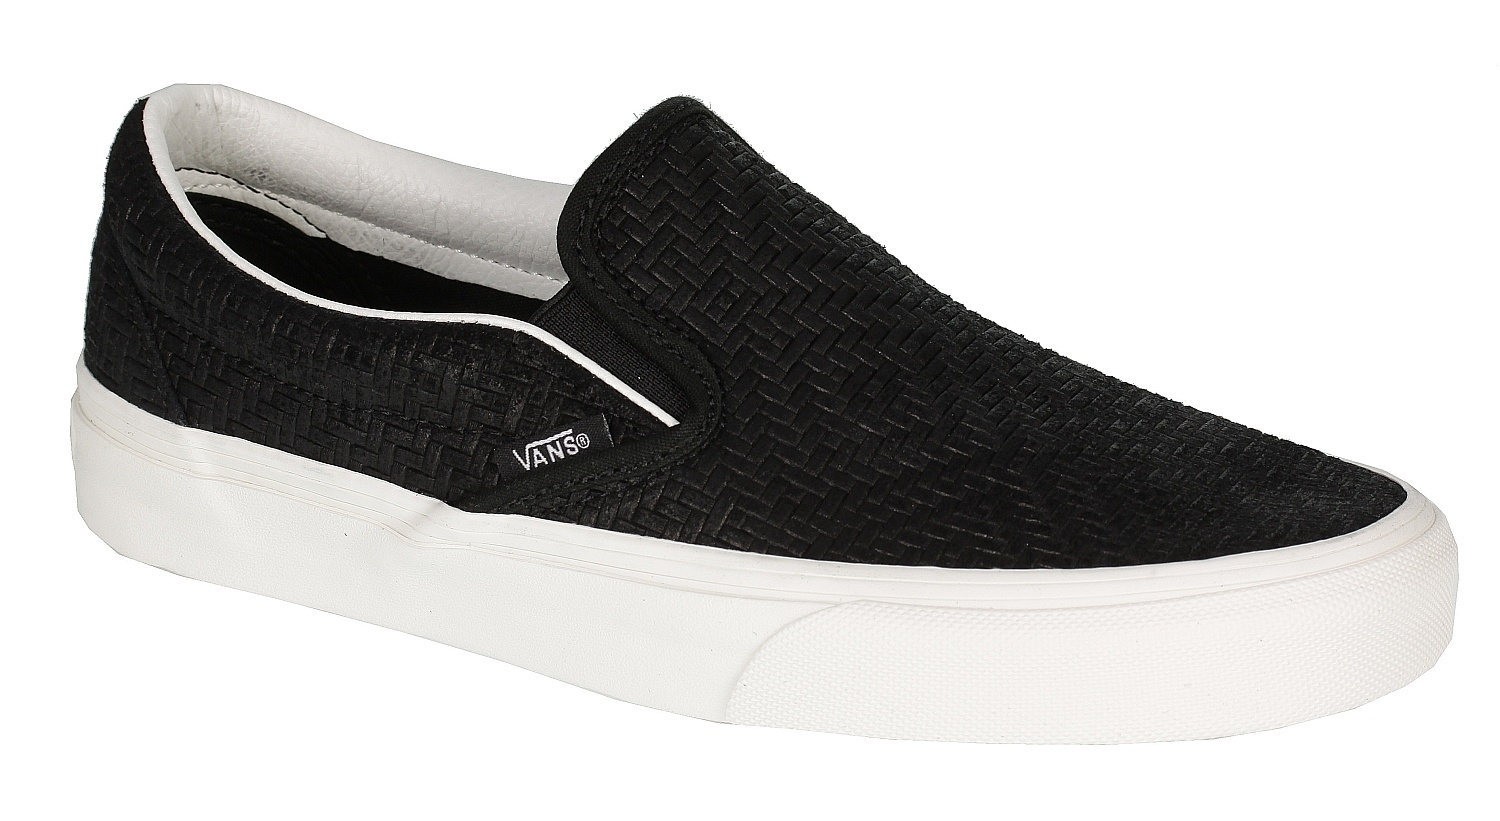 1db10055f9 shoes Vans Classic Slip-On - Braided Suede Black - Snowboard shop ...